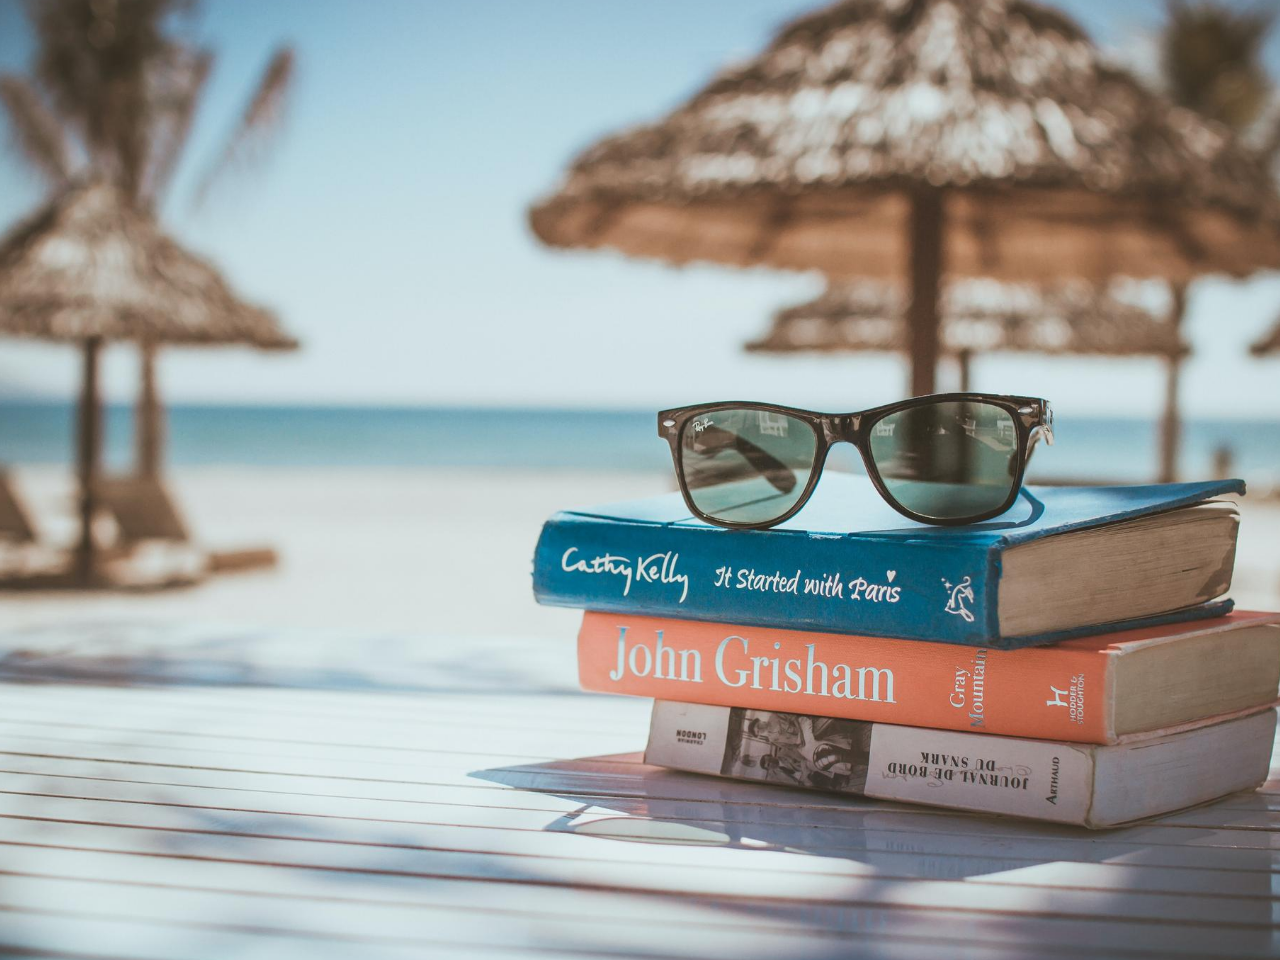 Best Travel Books of 2020 That You Need To Read